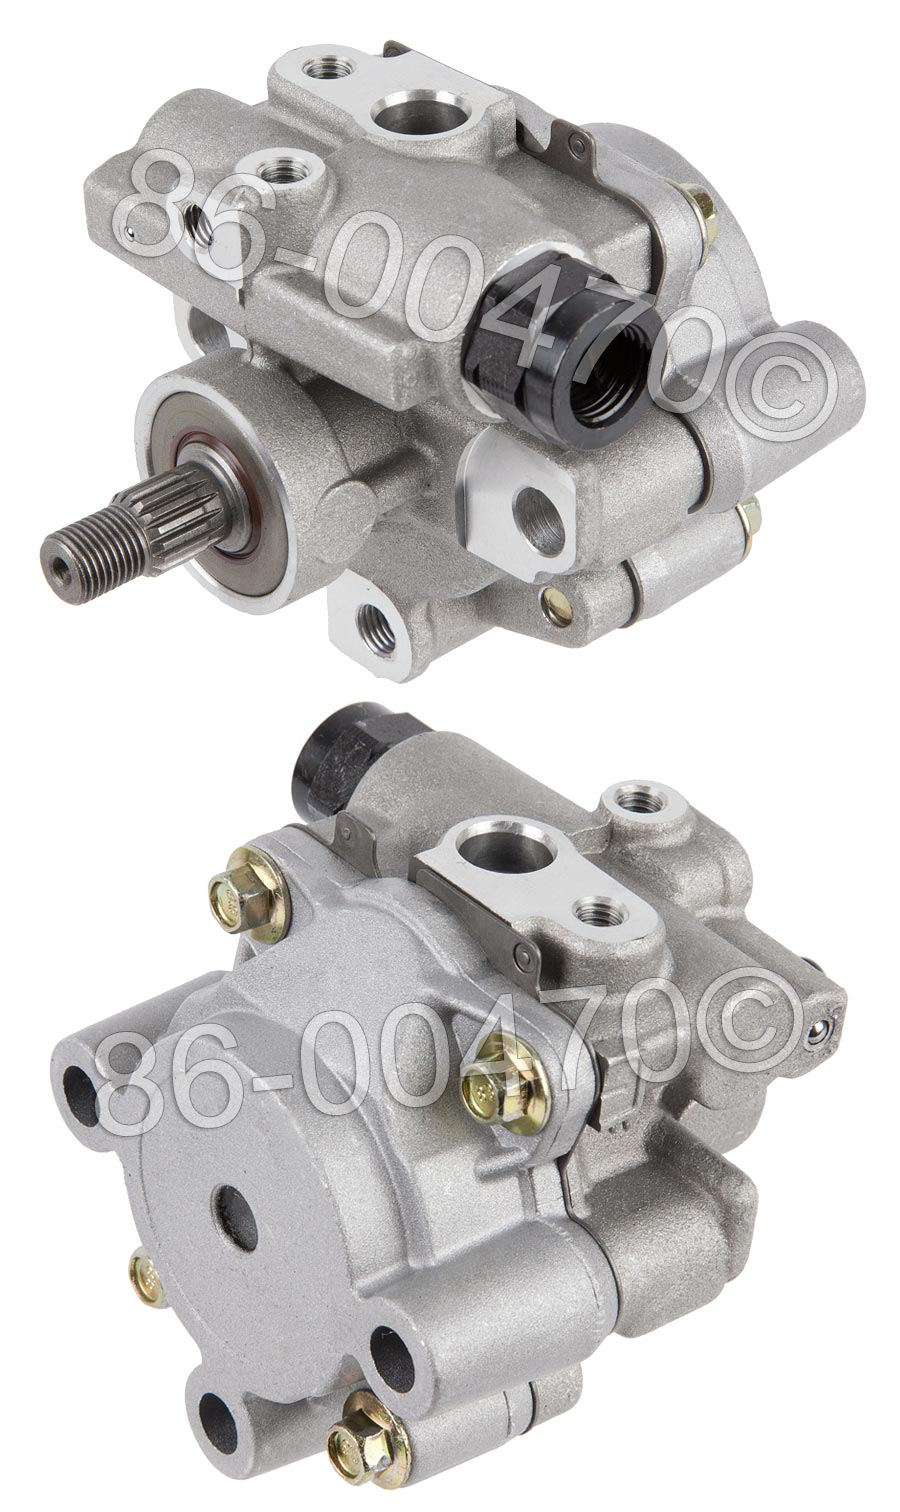 Lexus GS300 Steering Pump